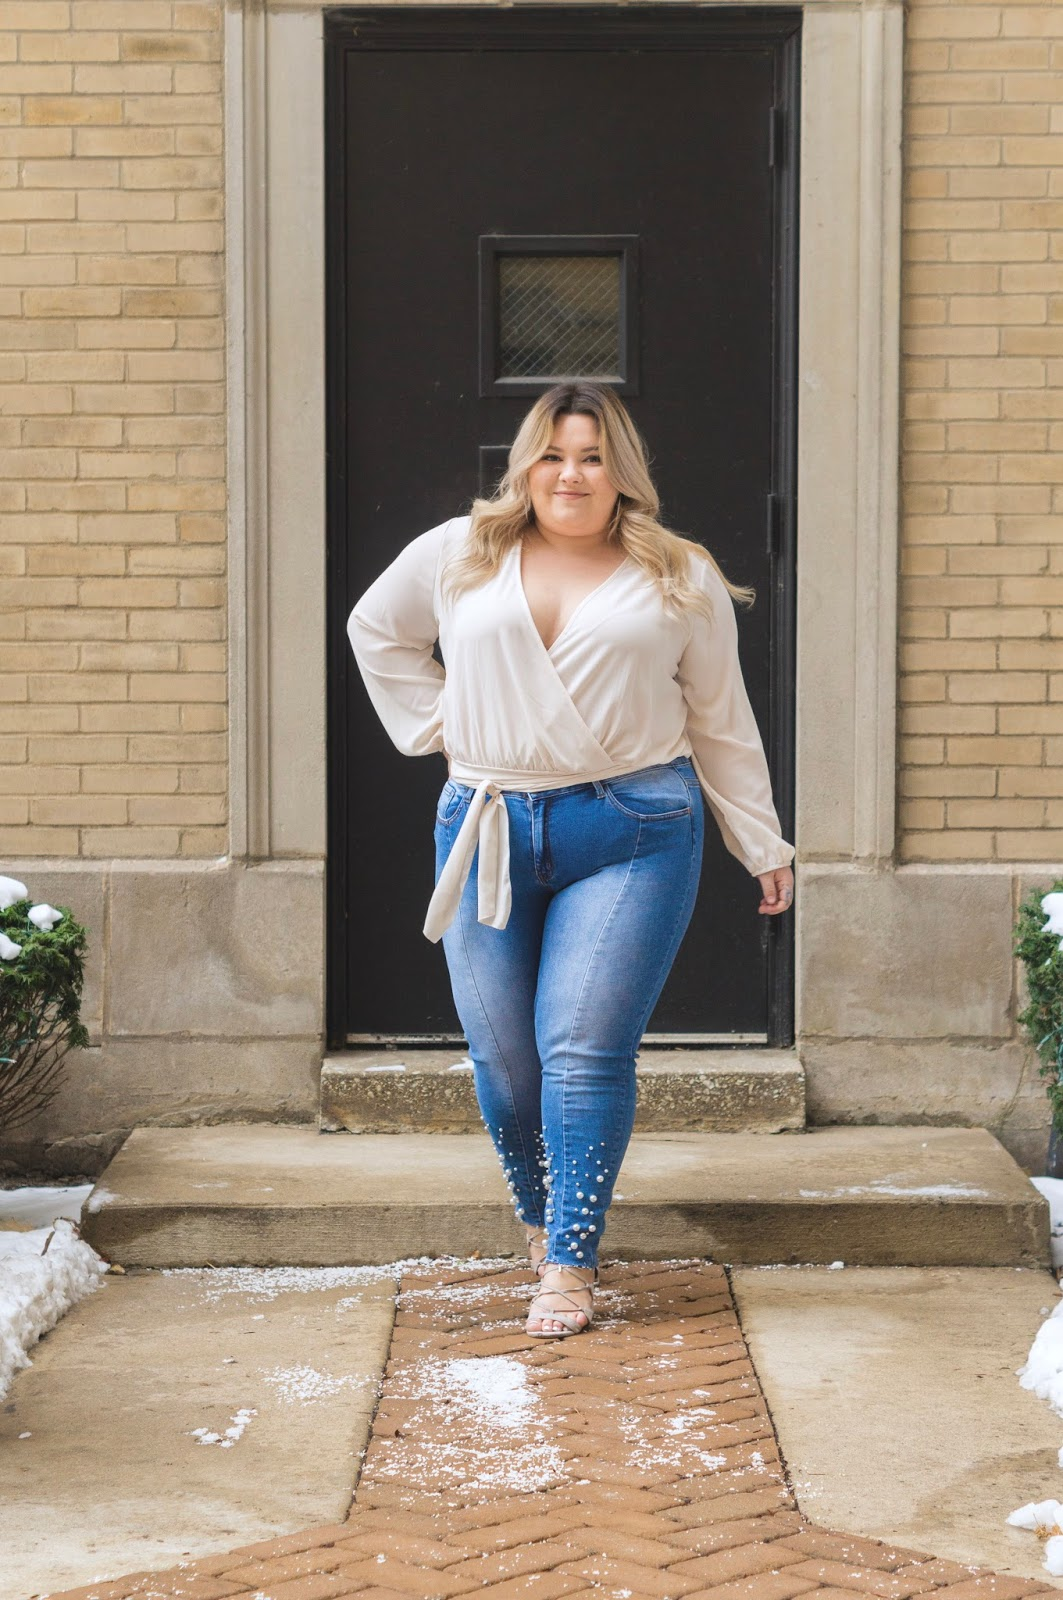 natalie in the city, natalie craig, Chicago fashion blogger, plus size fashion blogger, plus size Chicago model, fashion nova curve, fashion nova, blogger review, plus size pearl denim, affordable plus size clothing, plus size wrap top, trendy plus size clothing, embrace your curves, plus model magazine